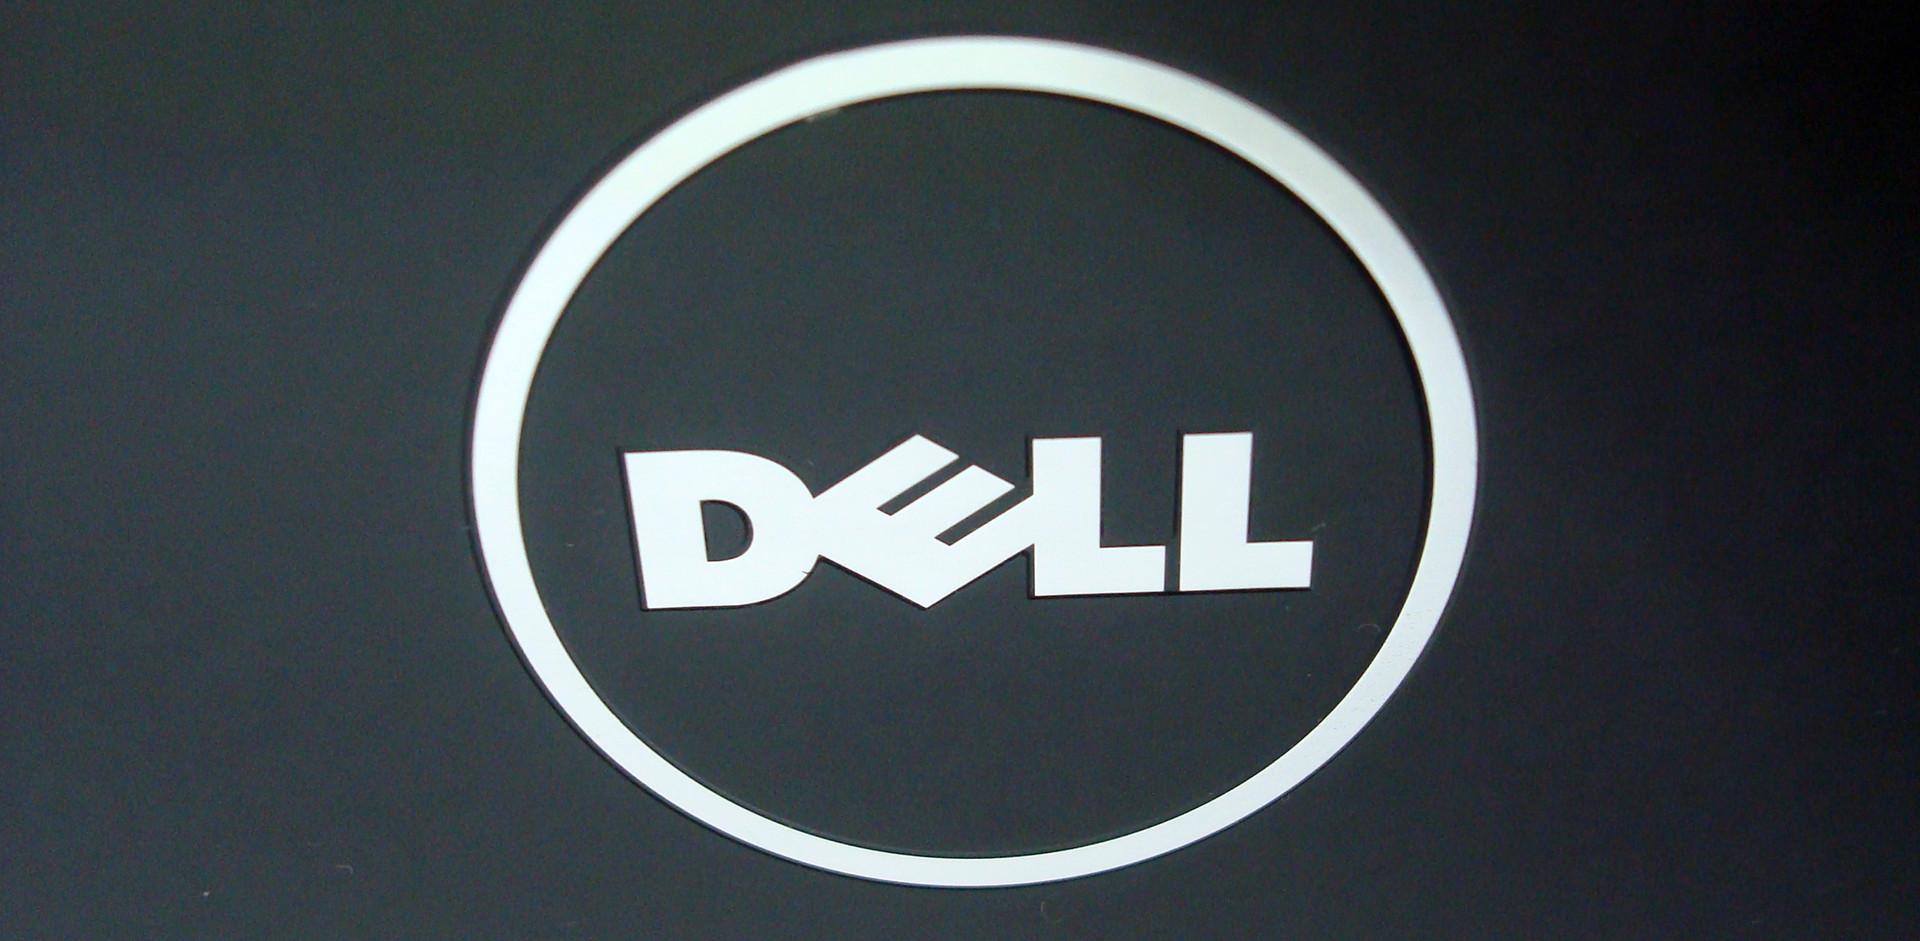 Review dell studio 1557 notebook notebookcheck reviews dell studio 1557 notebook buycottarizona